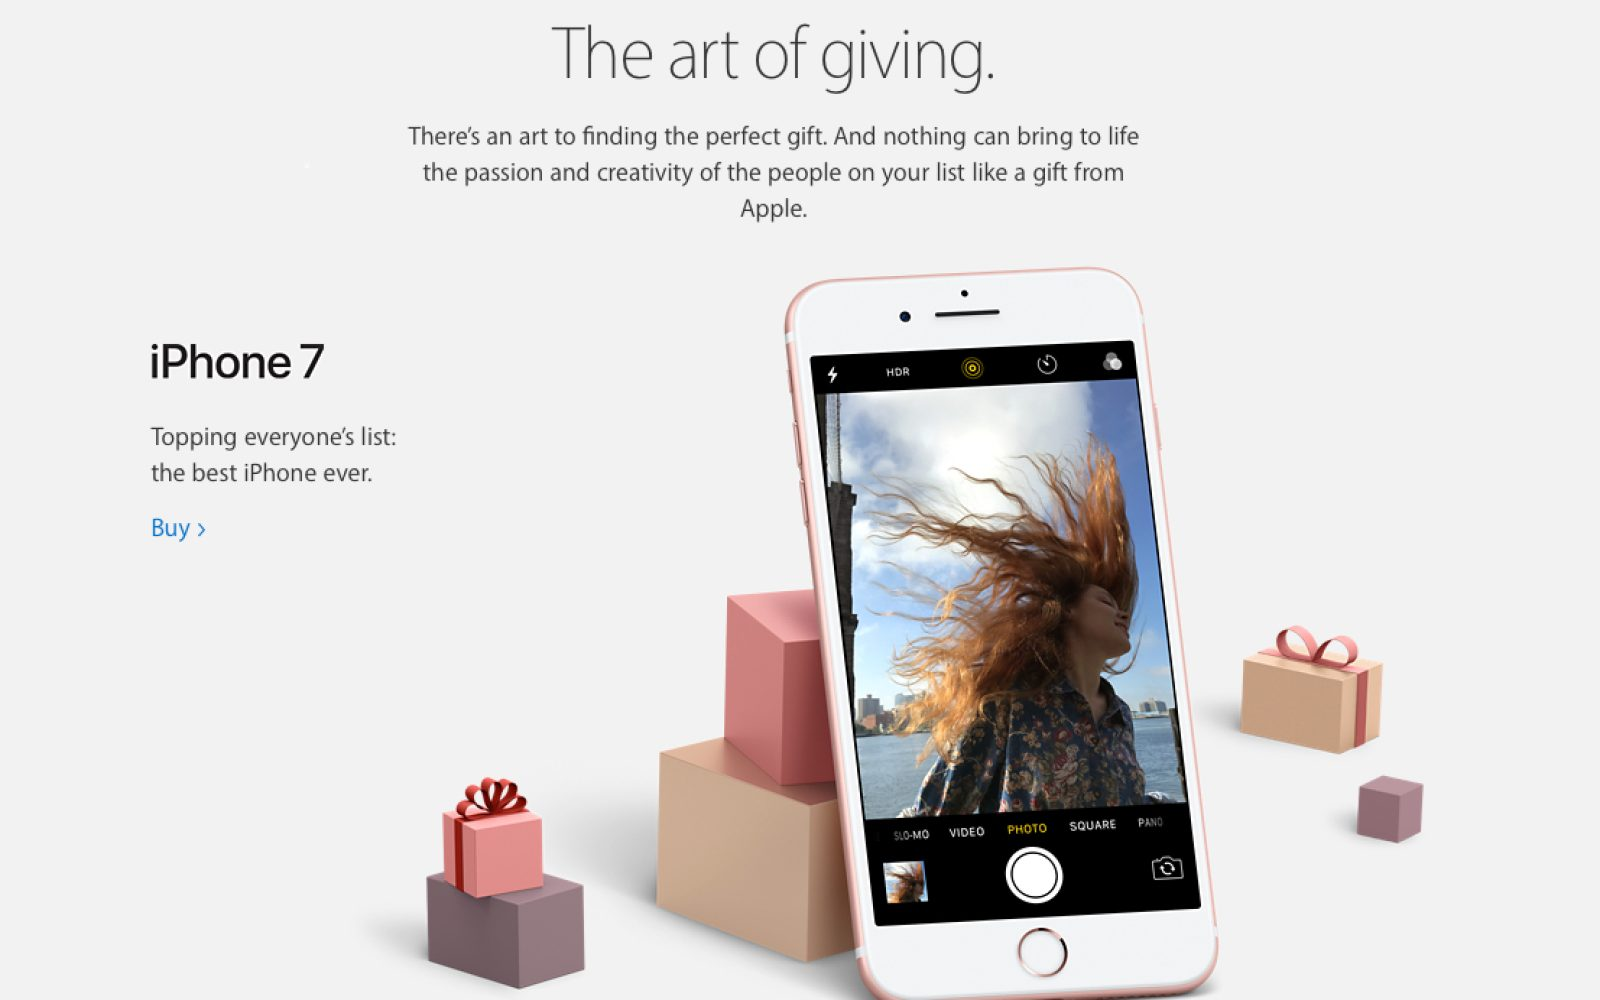 separation shoes 67941 aba12 Apple shares 2016 holiday gift guide, featuring iPhone photography ...